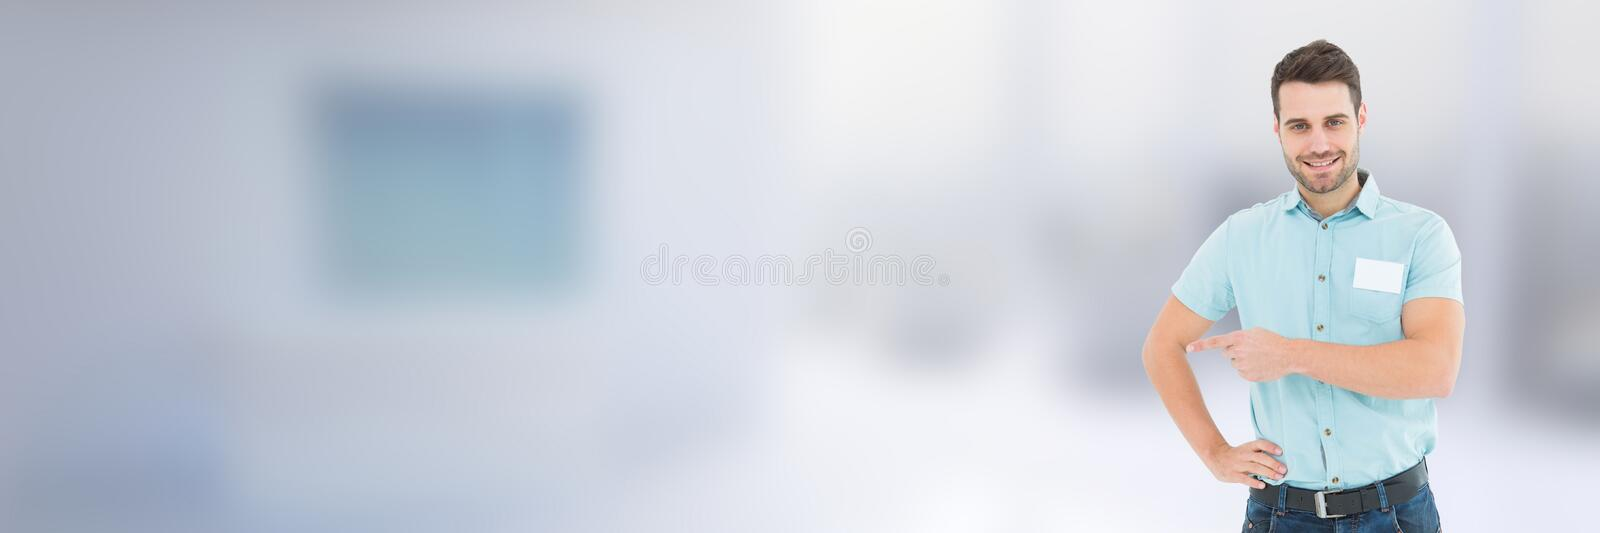 Worker in front of blurred background royalty free stock photography